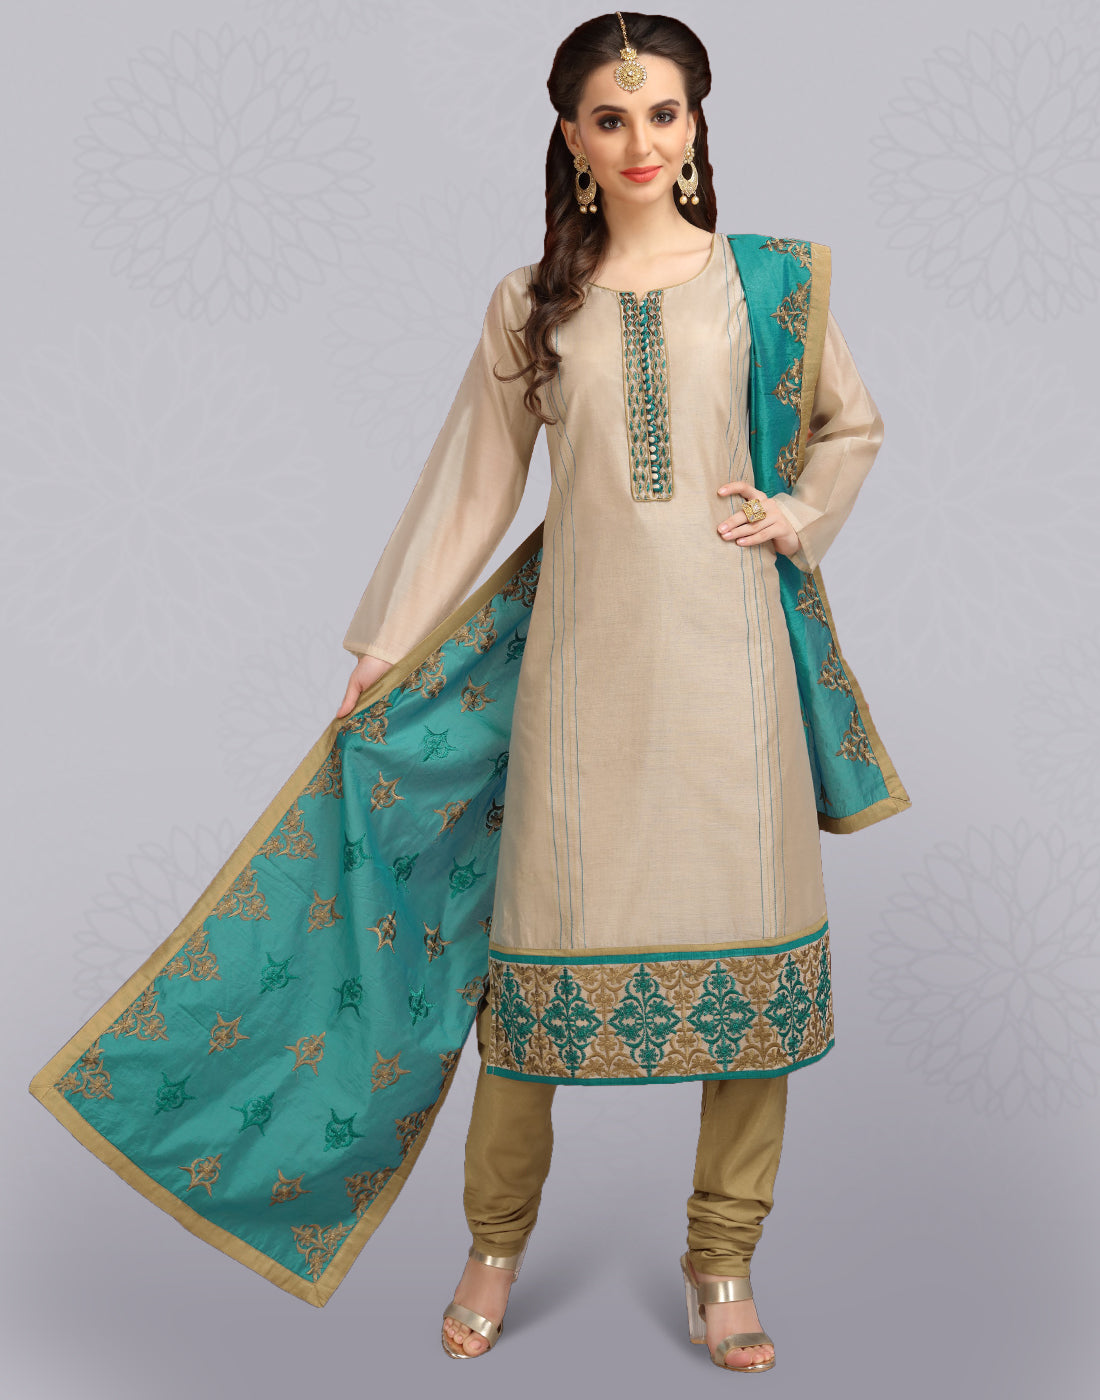 Oyster Grey 'N' Blue Chanderi Slawar Suit